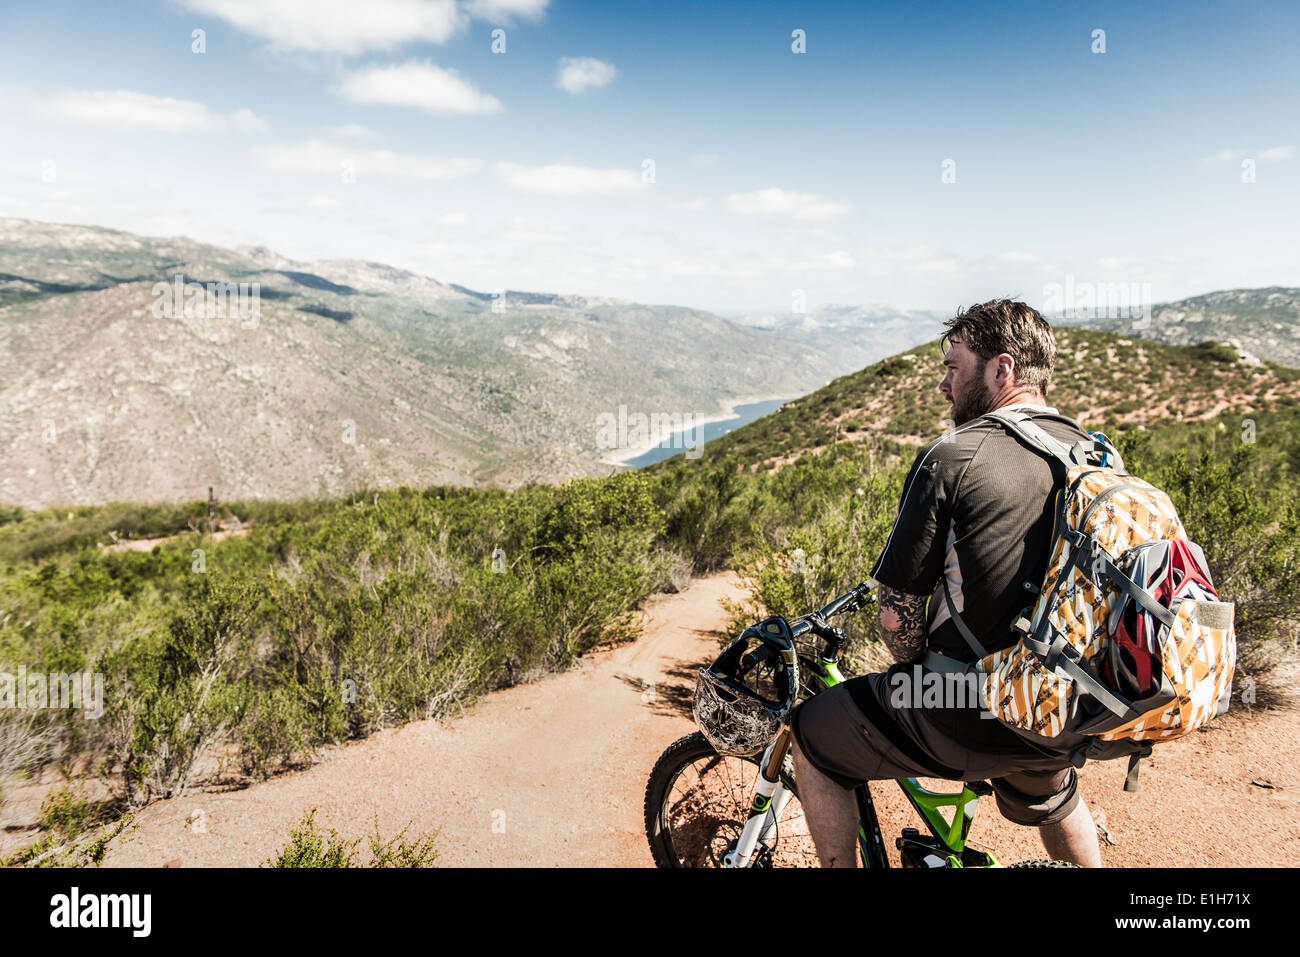 Downhill mountain biker guardando a vista Foto Stock